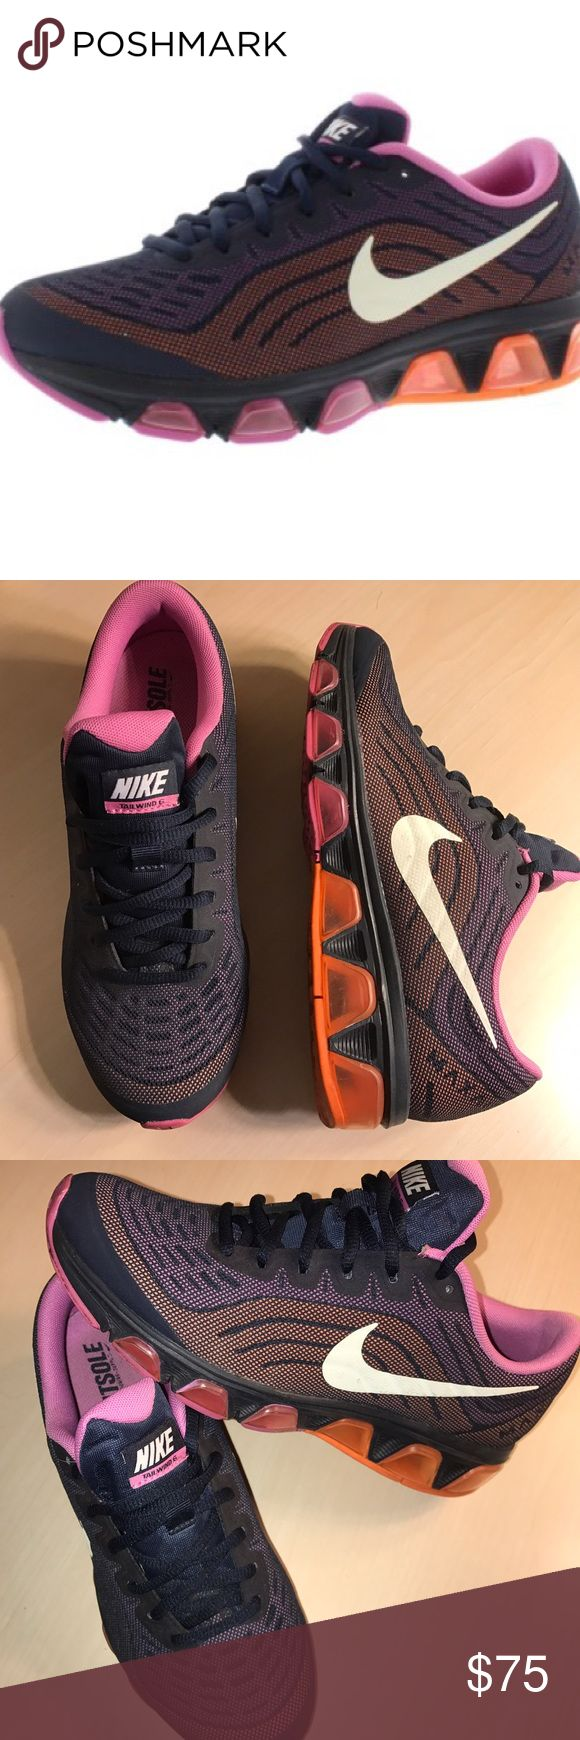 Nike Tailwind 6 Running Obsidian/Sail/Red Violet/Atomic Oran.  Showcasing a bang-up blend of durable cushioning and fast fashion, the Nike Air Max Tailwind 6 running shoe is sure to enhance your comfort and style, mile after mile. This neutral running shoe features a lightweight and supportive foam upper that keeps you fast and flexible. Breathable top mesh increases airflow, keeping your feet cool and dry as you spark your fitness. Nike Shoes Sneakers